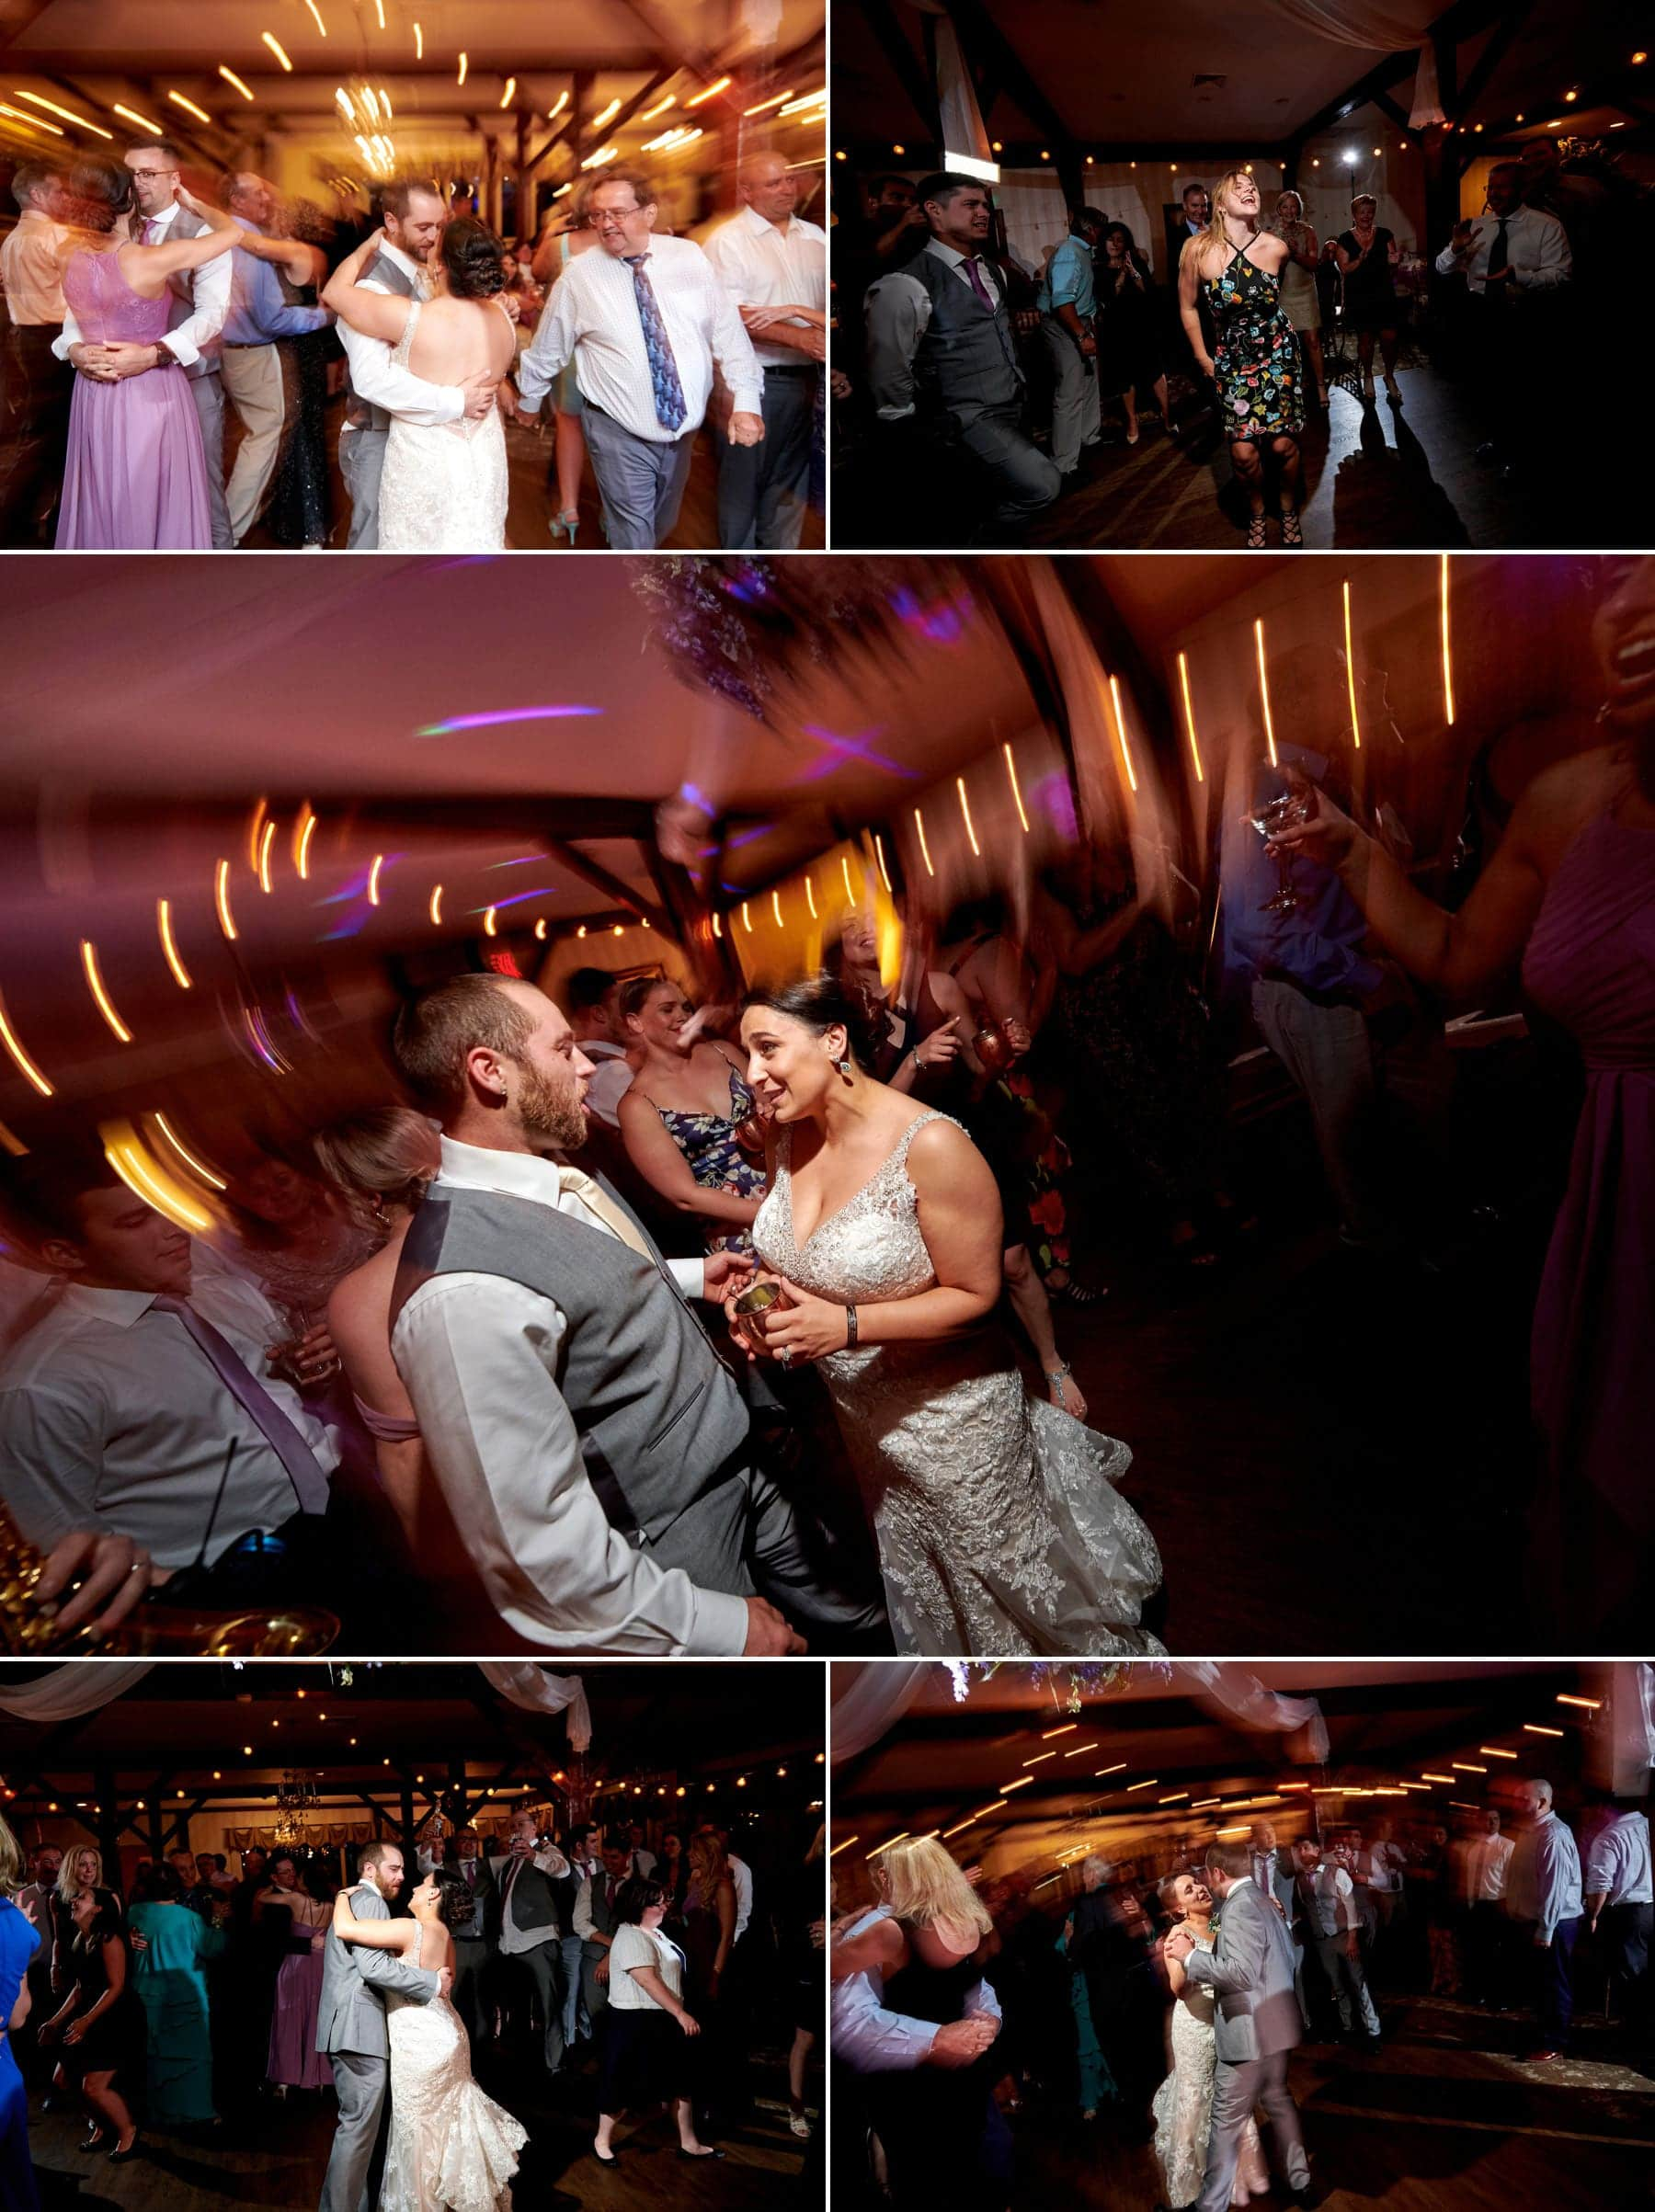 epic wedding dancing photos at farmstead golf club